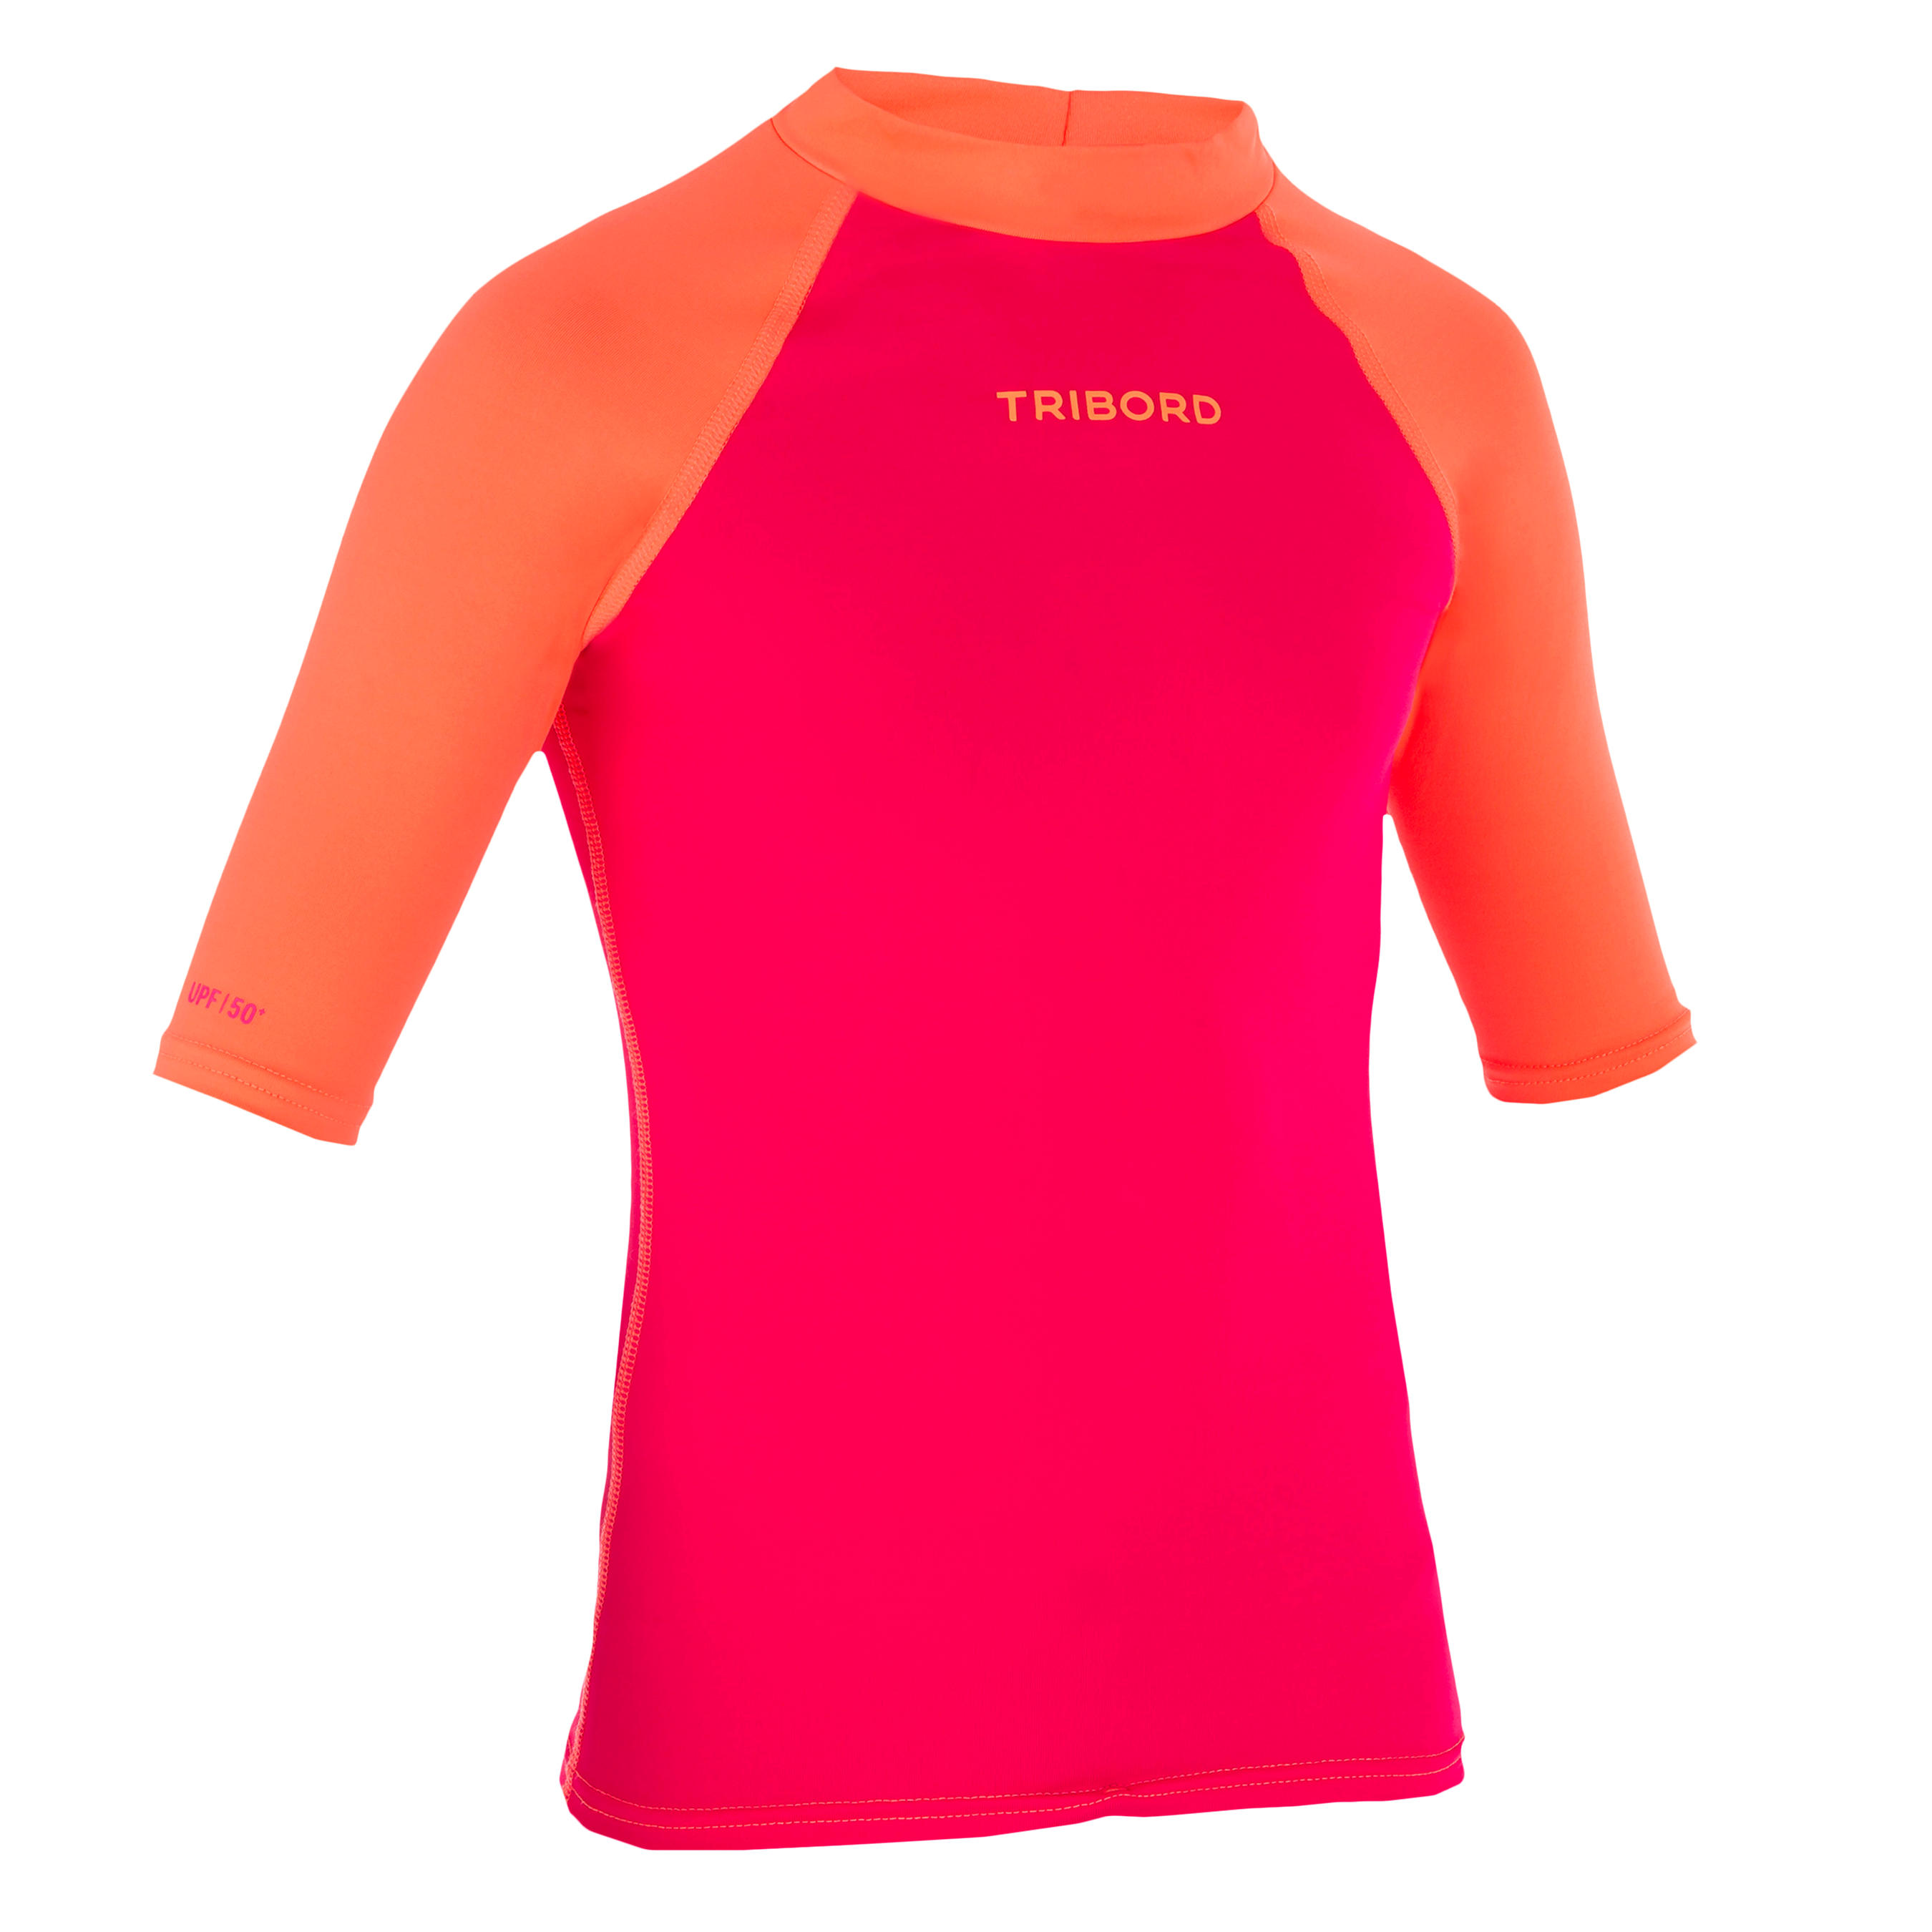 100 Children's Short Sleeve UV Protection Surfing Top T-Shirt - Pink